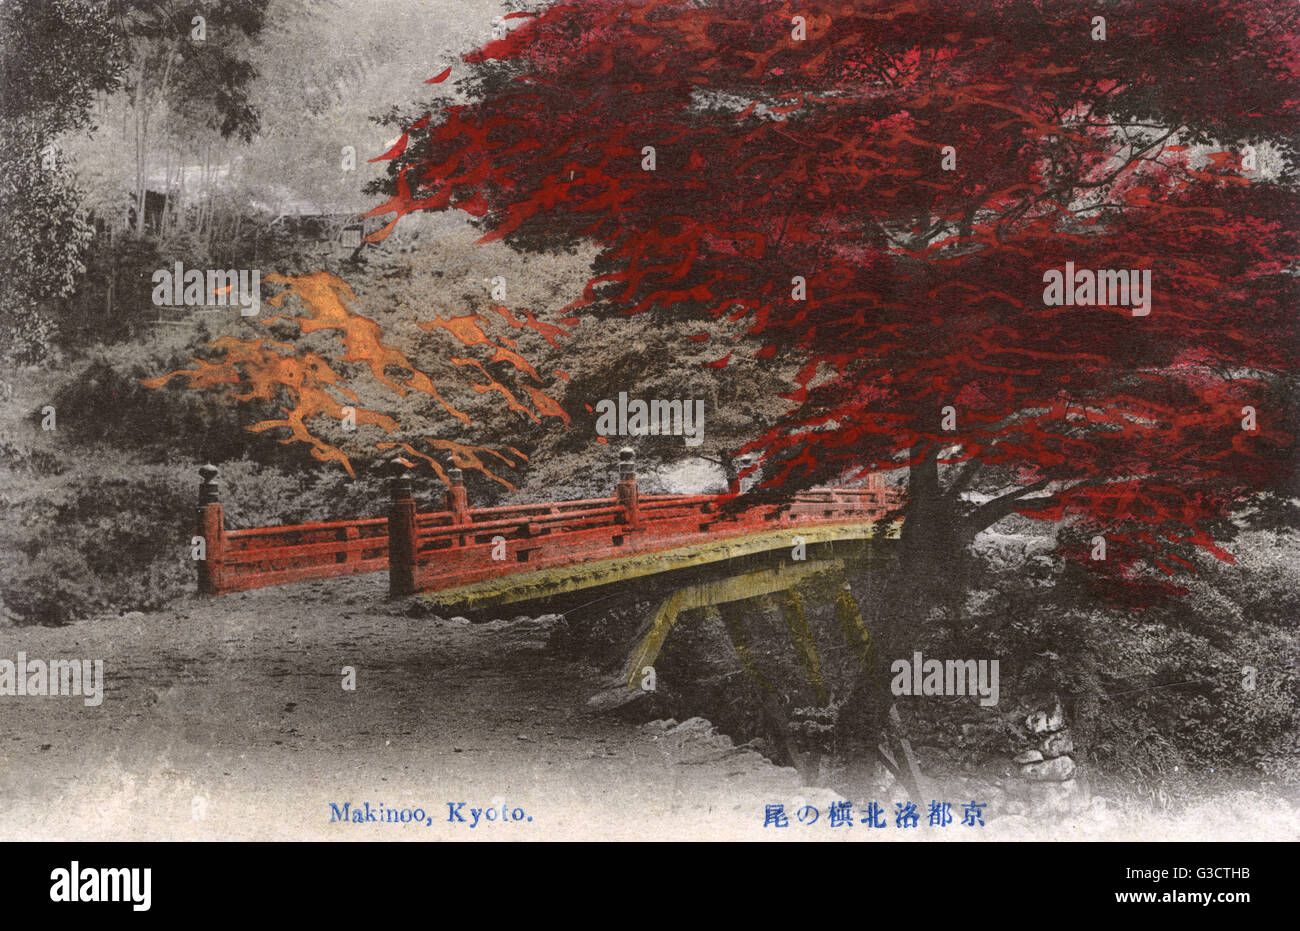 Shigetsu-kyo bridge that leads to Saimyo-ji temple in Makinoo, Kyoto, that stands between Kozan-ji and Jingo-ji, - Stock Image